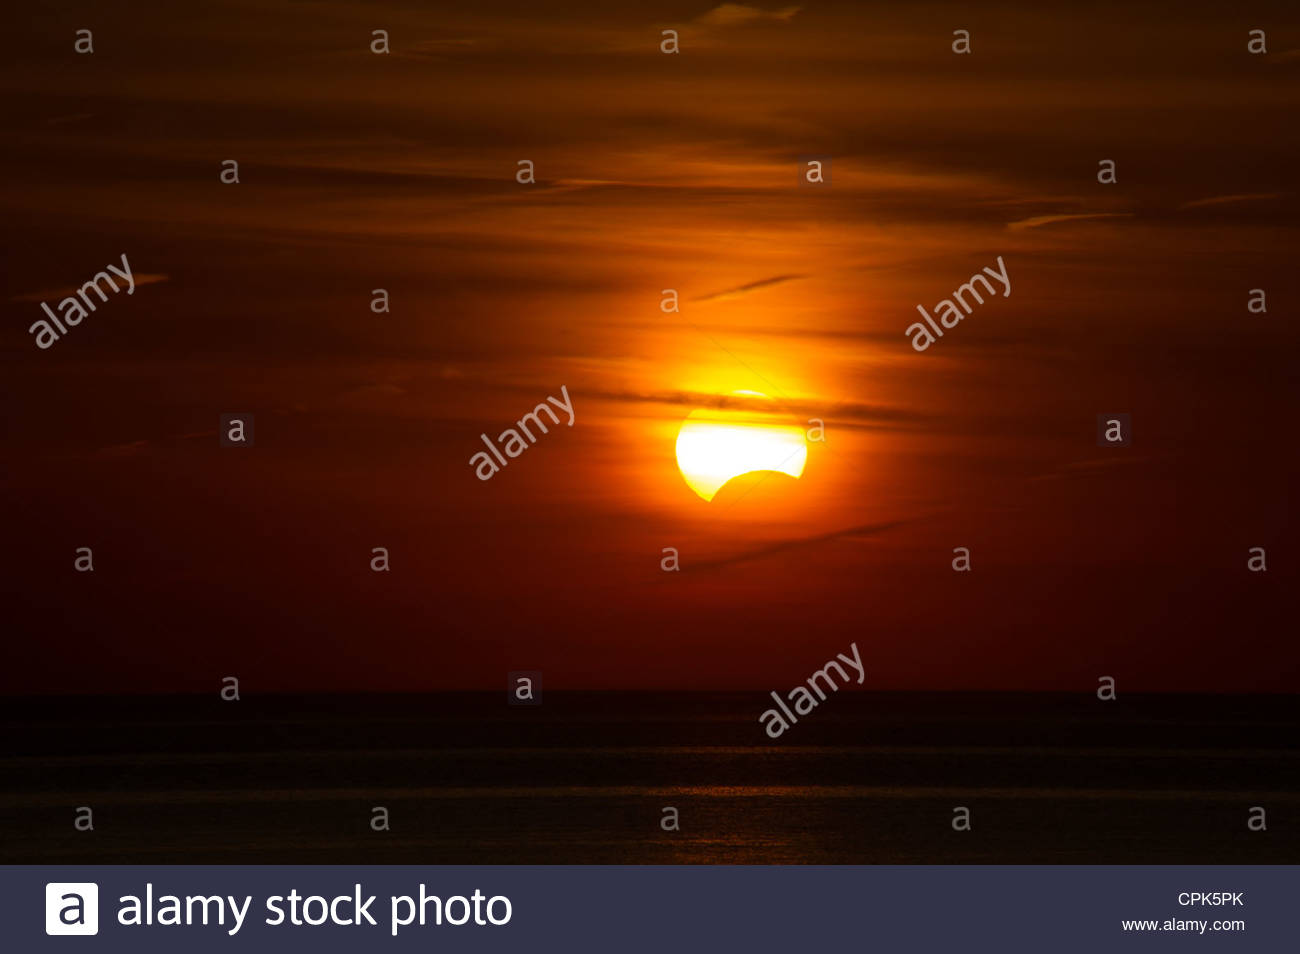 Partial Solar Eclipse at sunset in Ontario Canada on Lake Huron - Stock Image